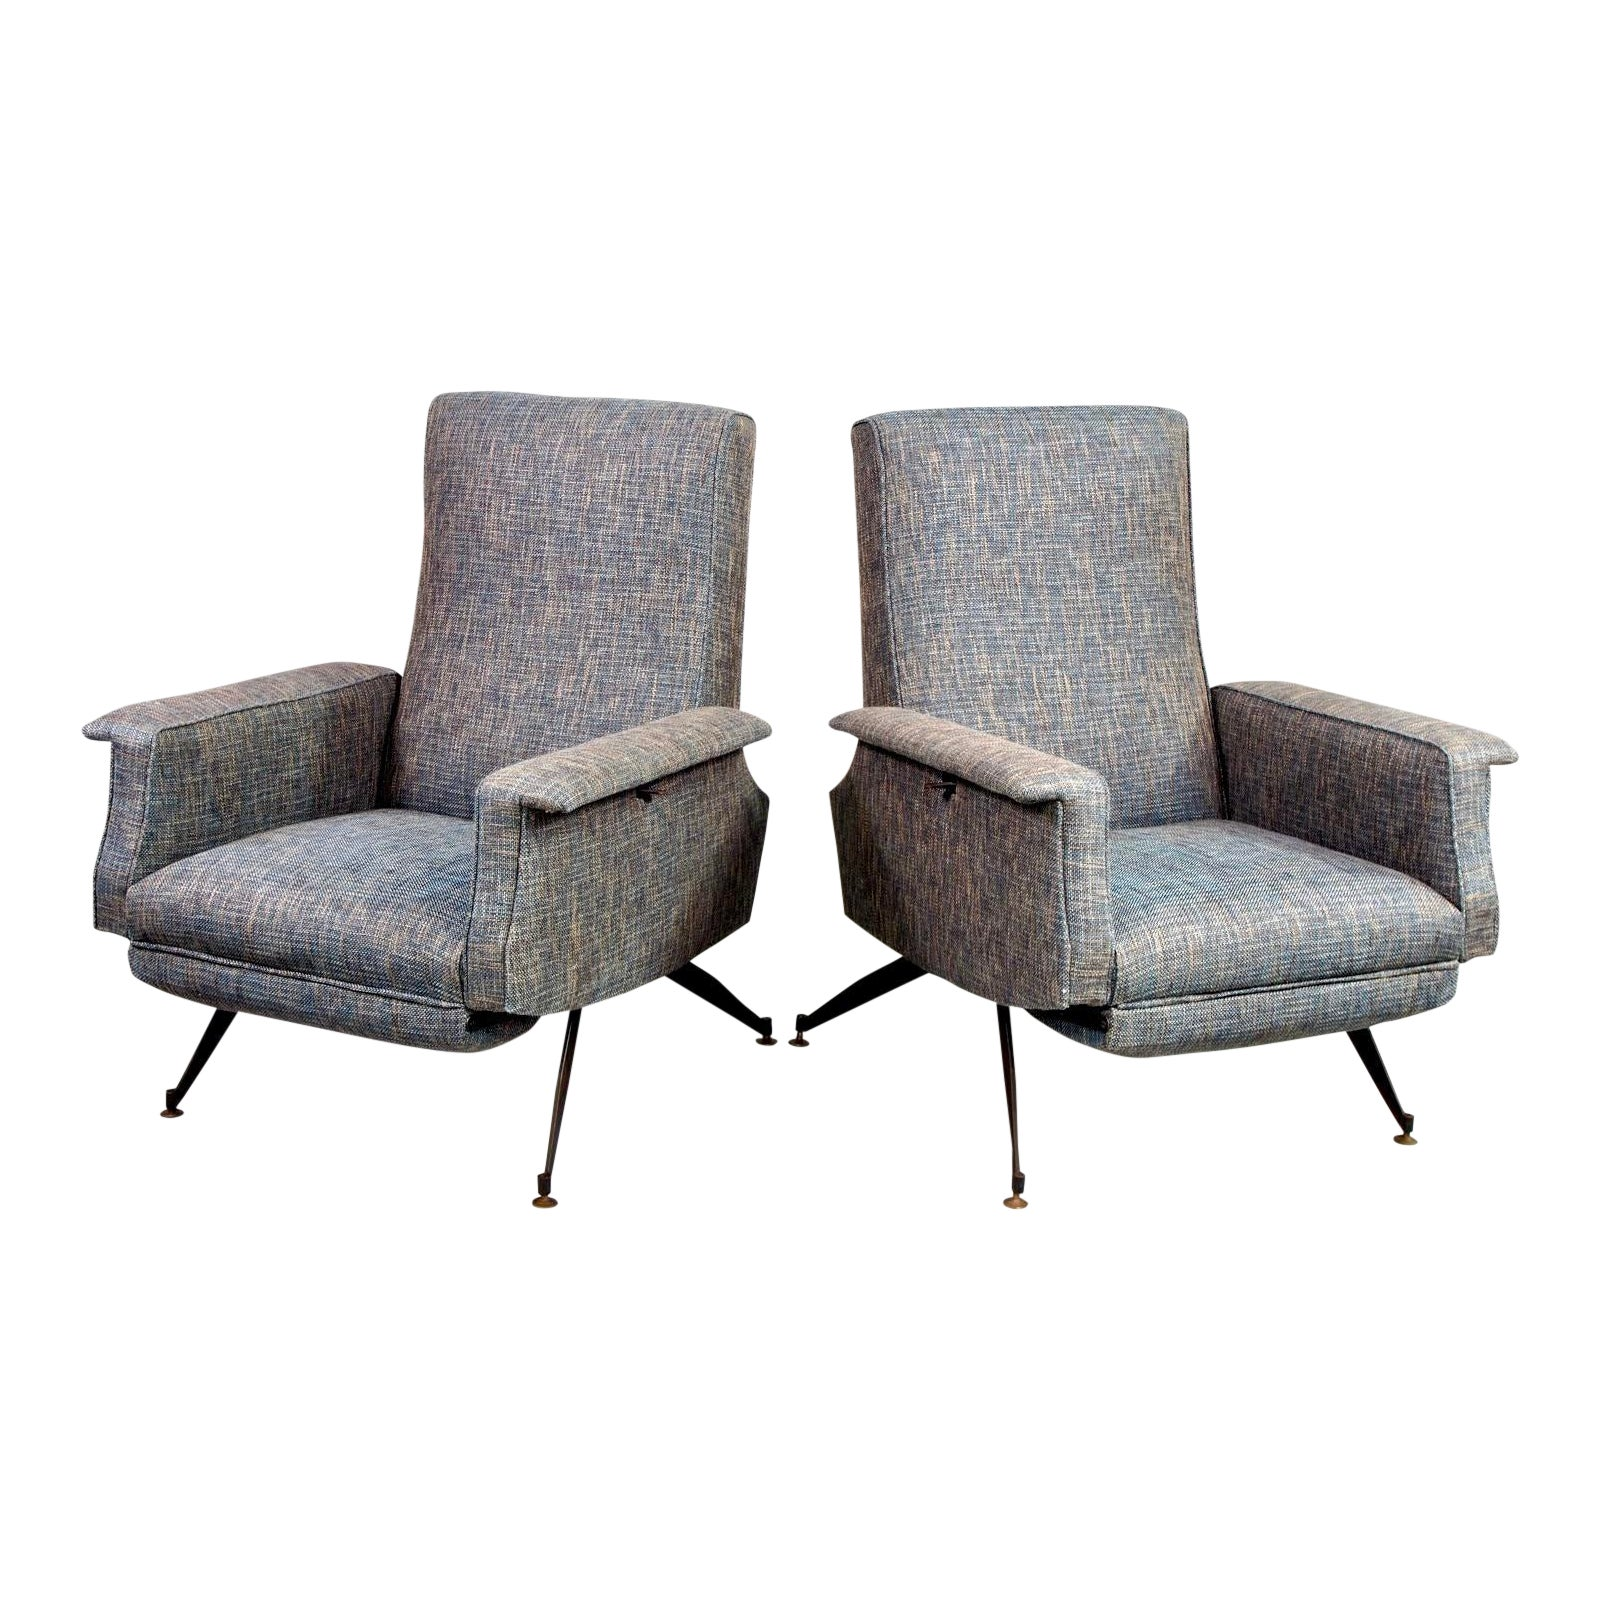 Italian Mid Century Lounge Chairs With New Tweed Upholstery A Pair Chairish,How To Make A Candle Wick Stay